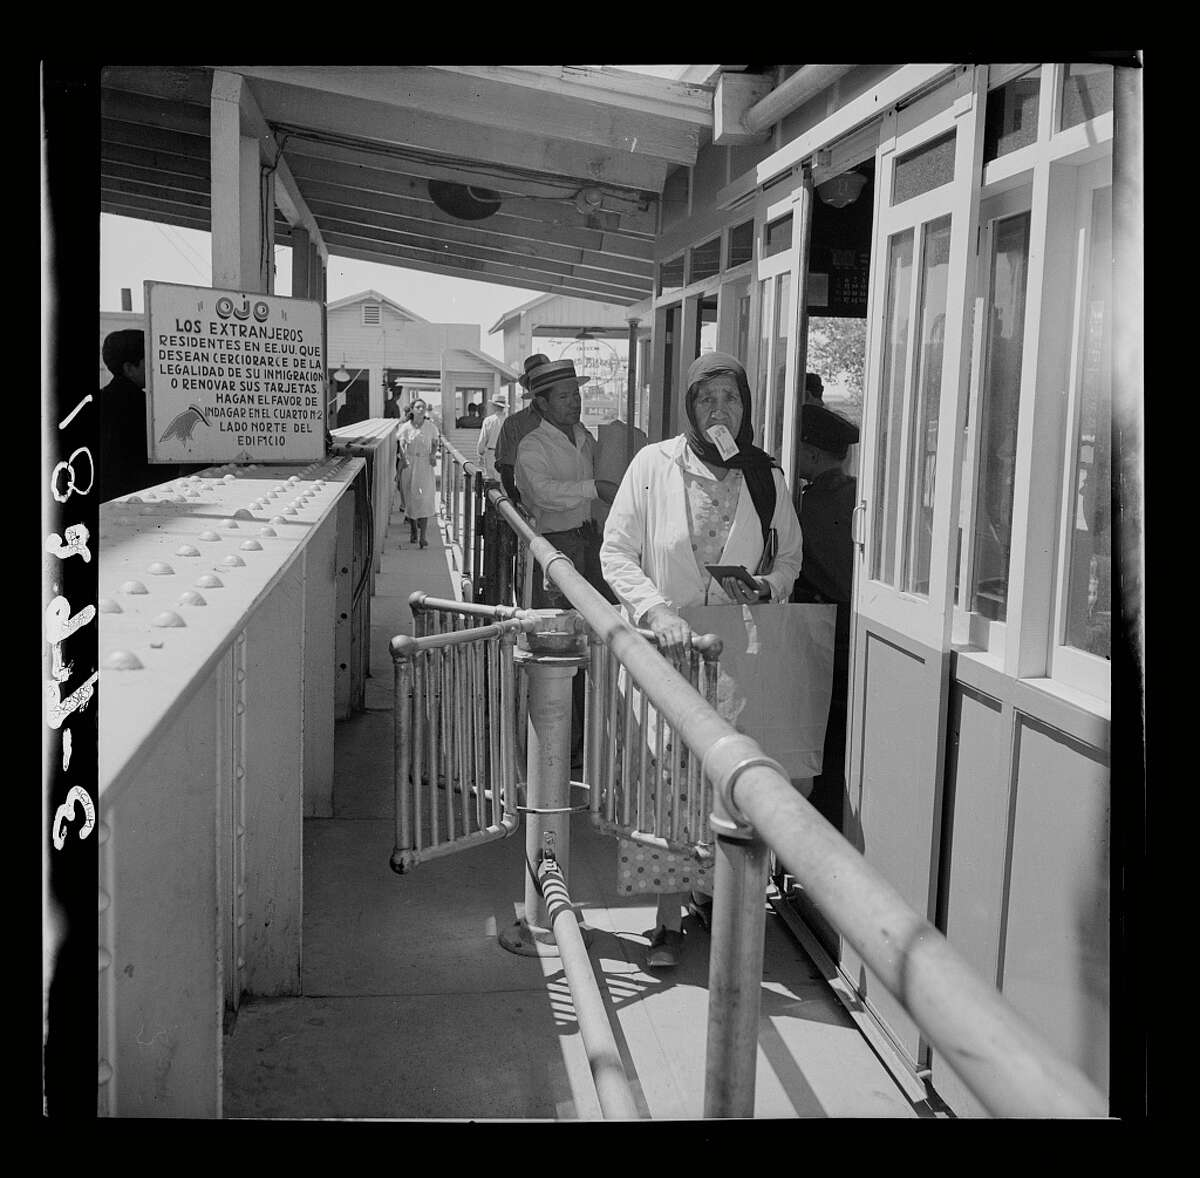 Mexicans entering the United States at the U.S. immigration station in El Paso, Texas, June 1938.